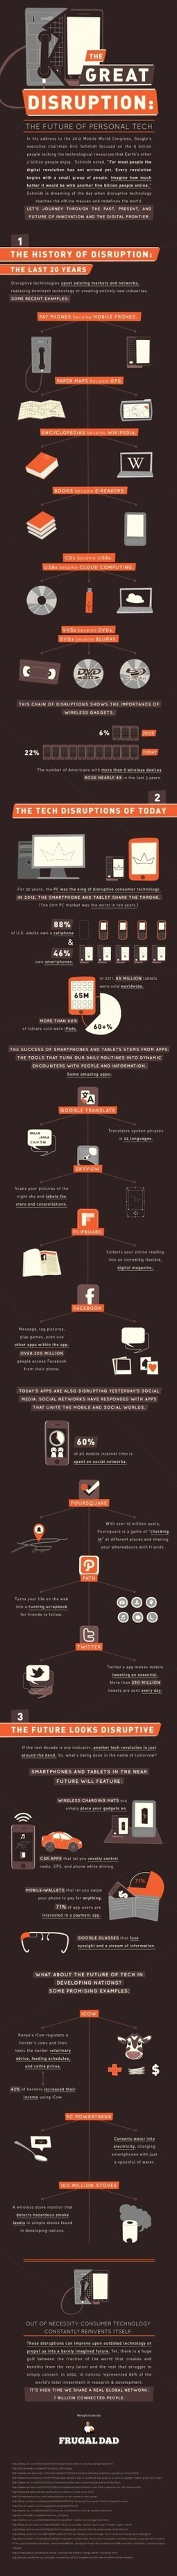 [INFOGRAPHIC] The Great Disruption: The Future of Personal Tech | INFOGRAPHICS | Scoop.it